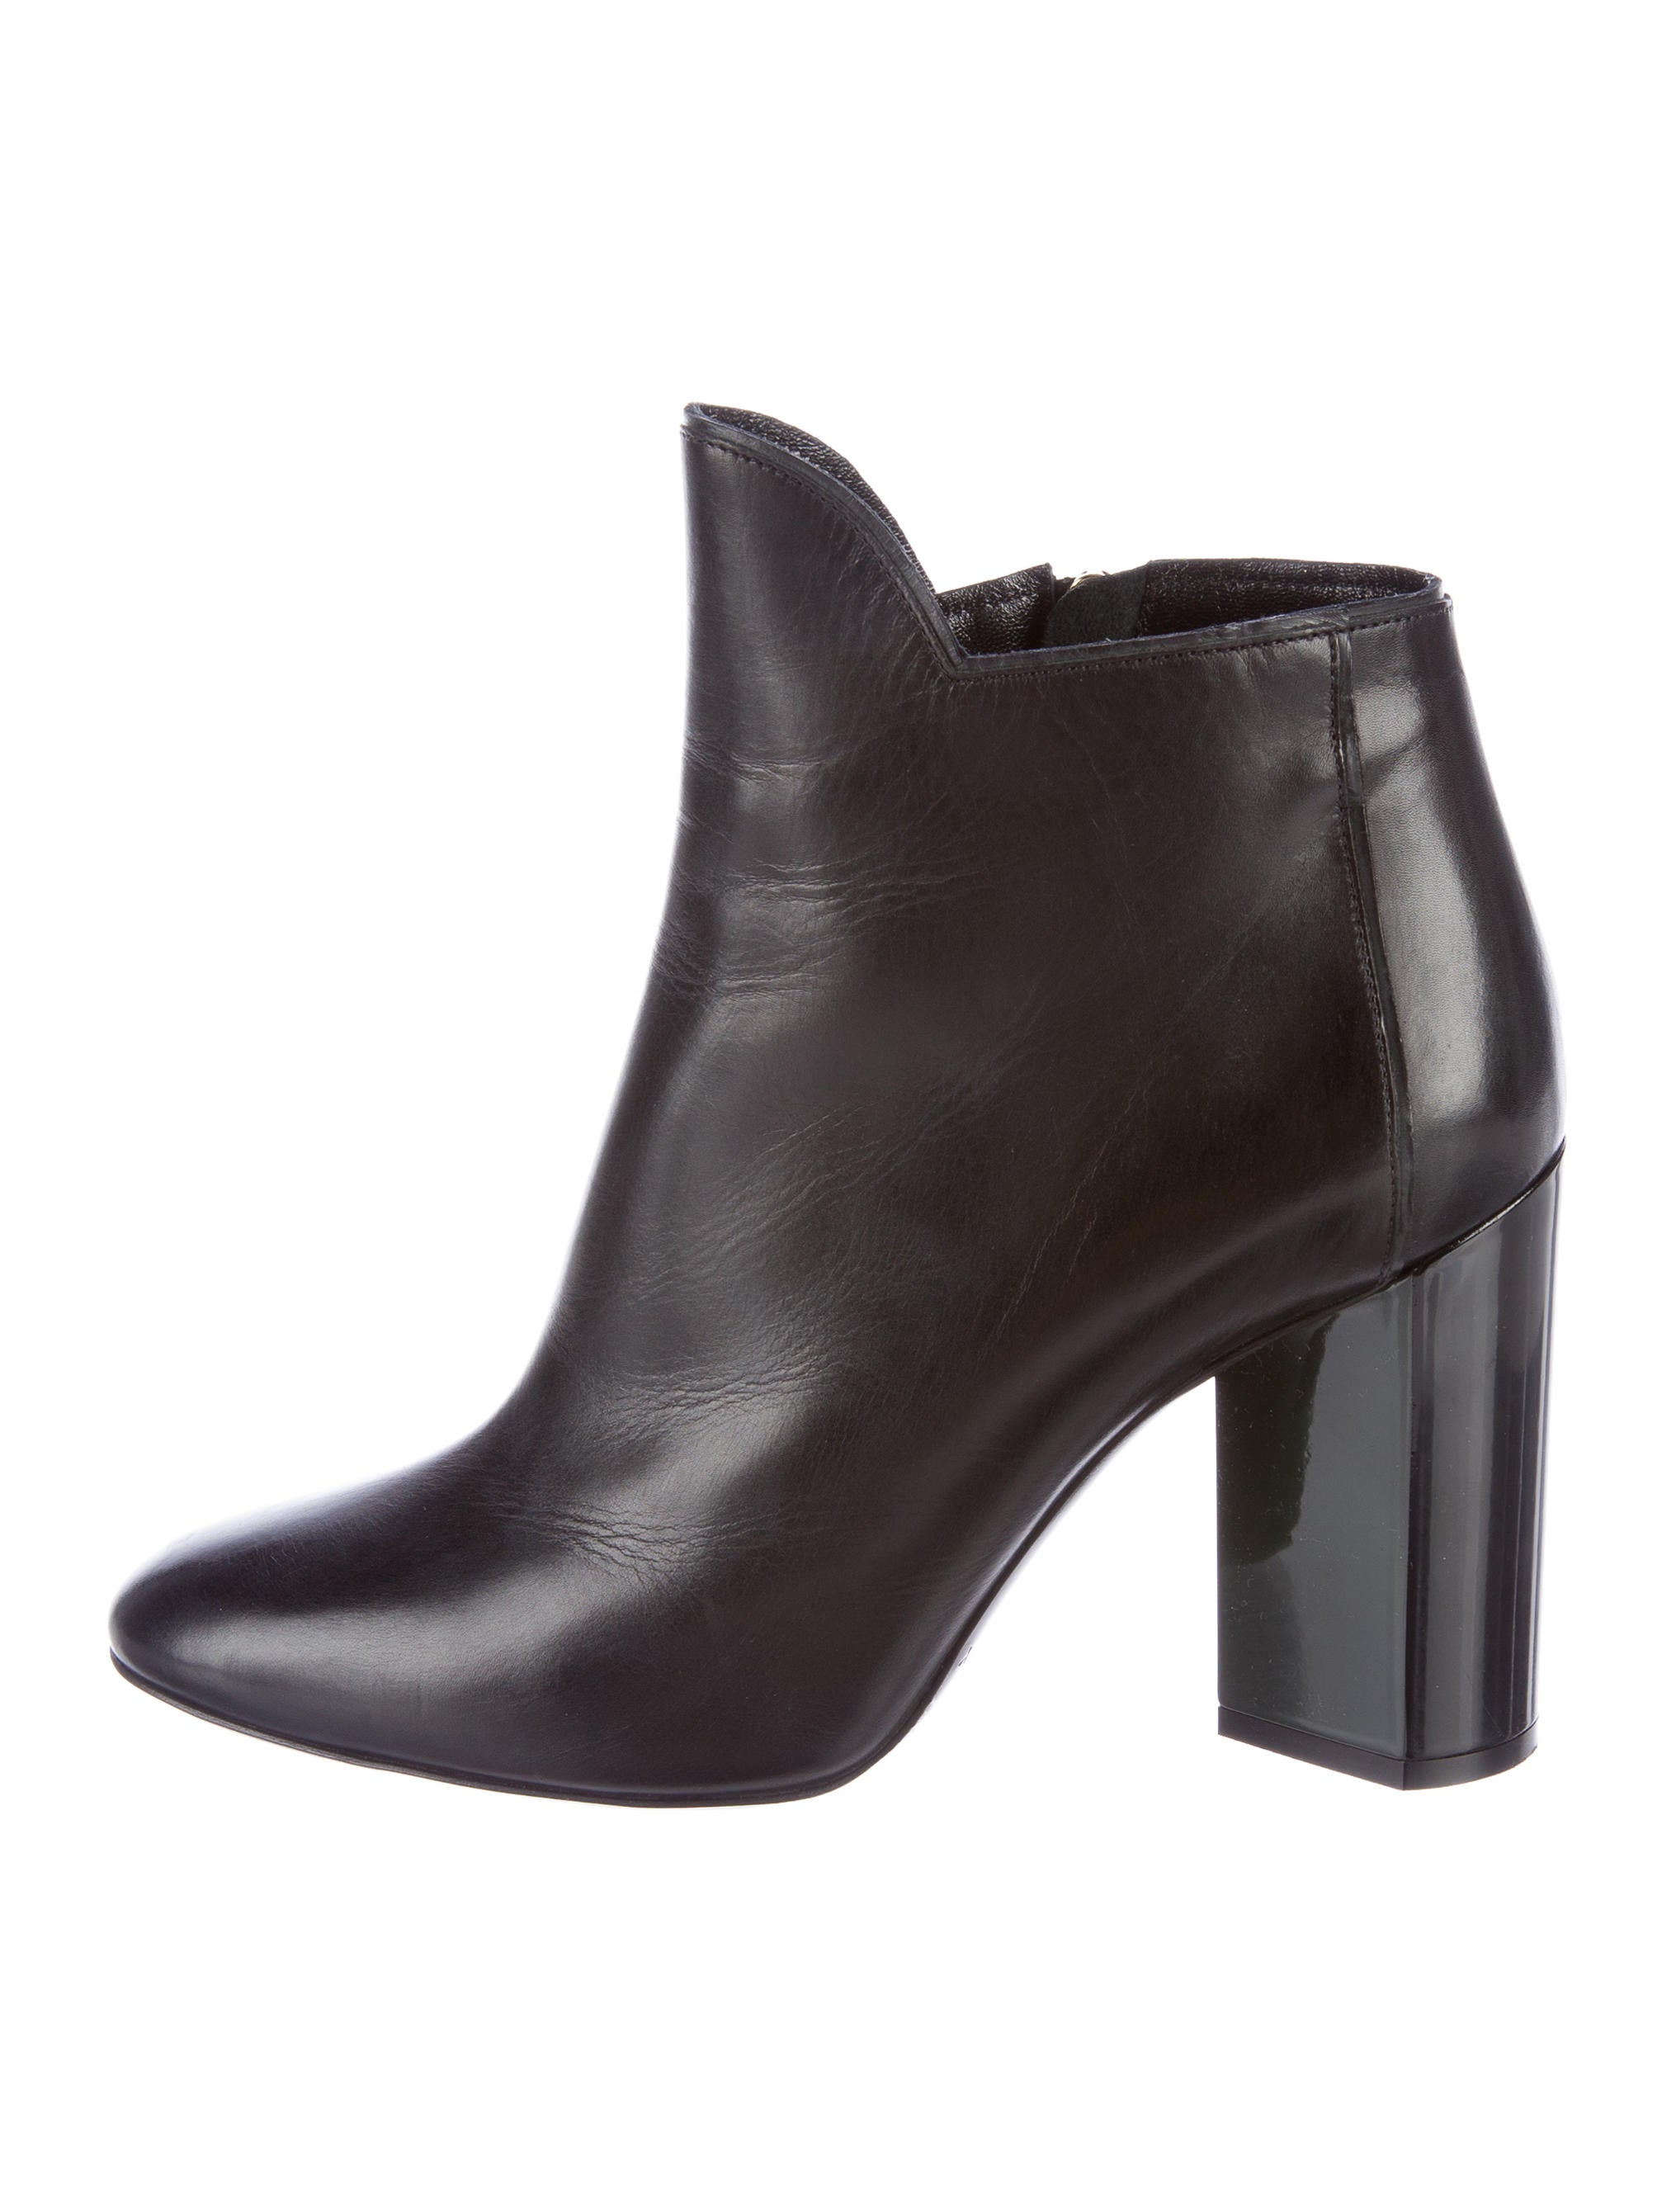 hardy leather pointed toe ankle boots shoes